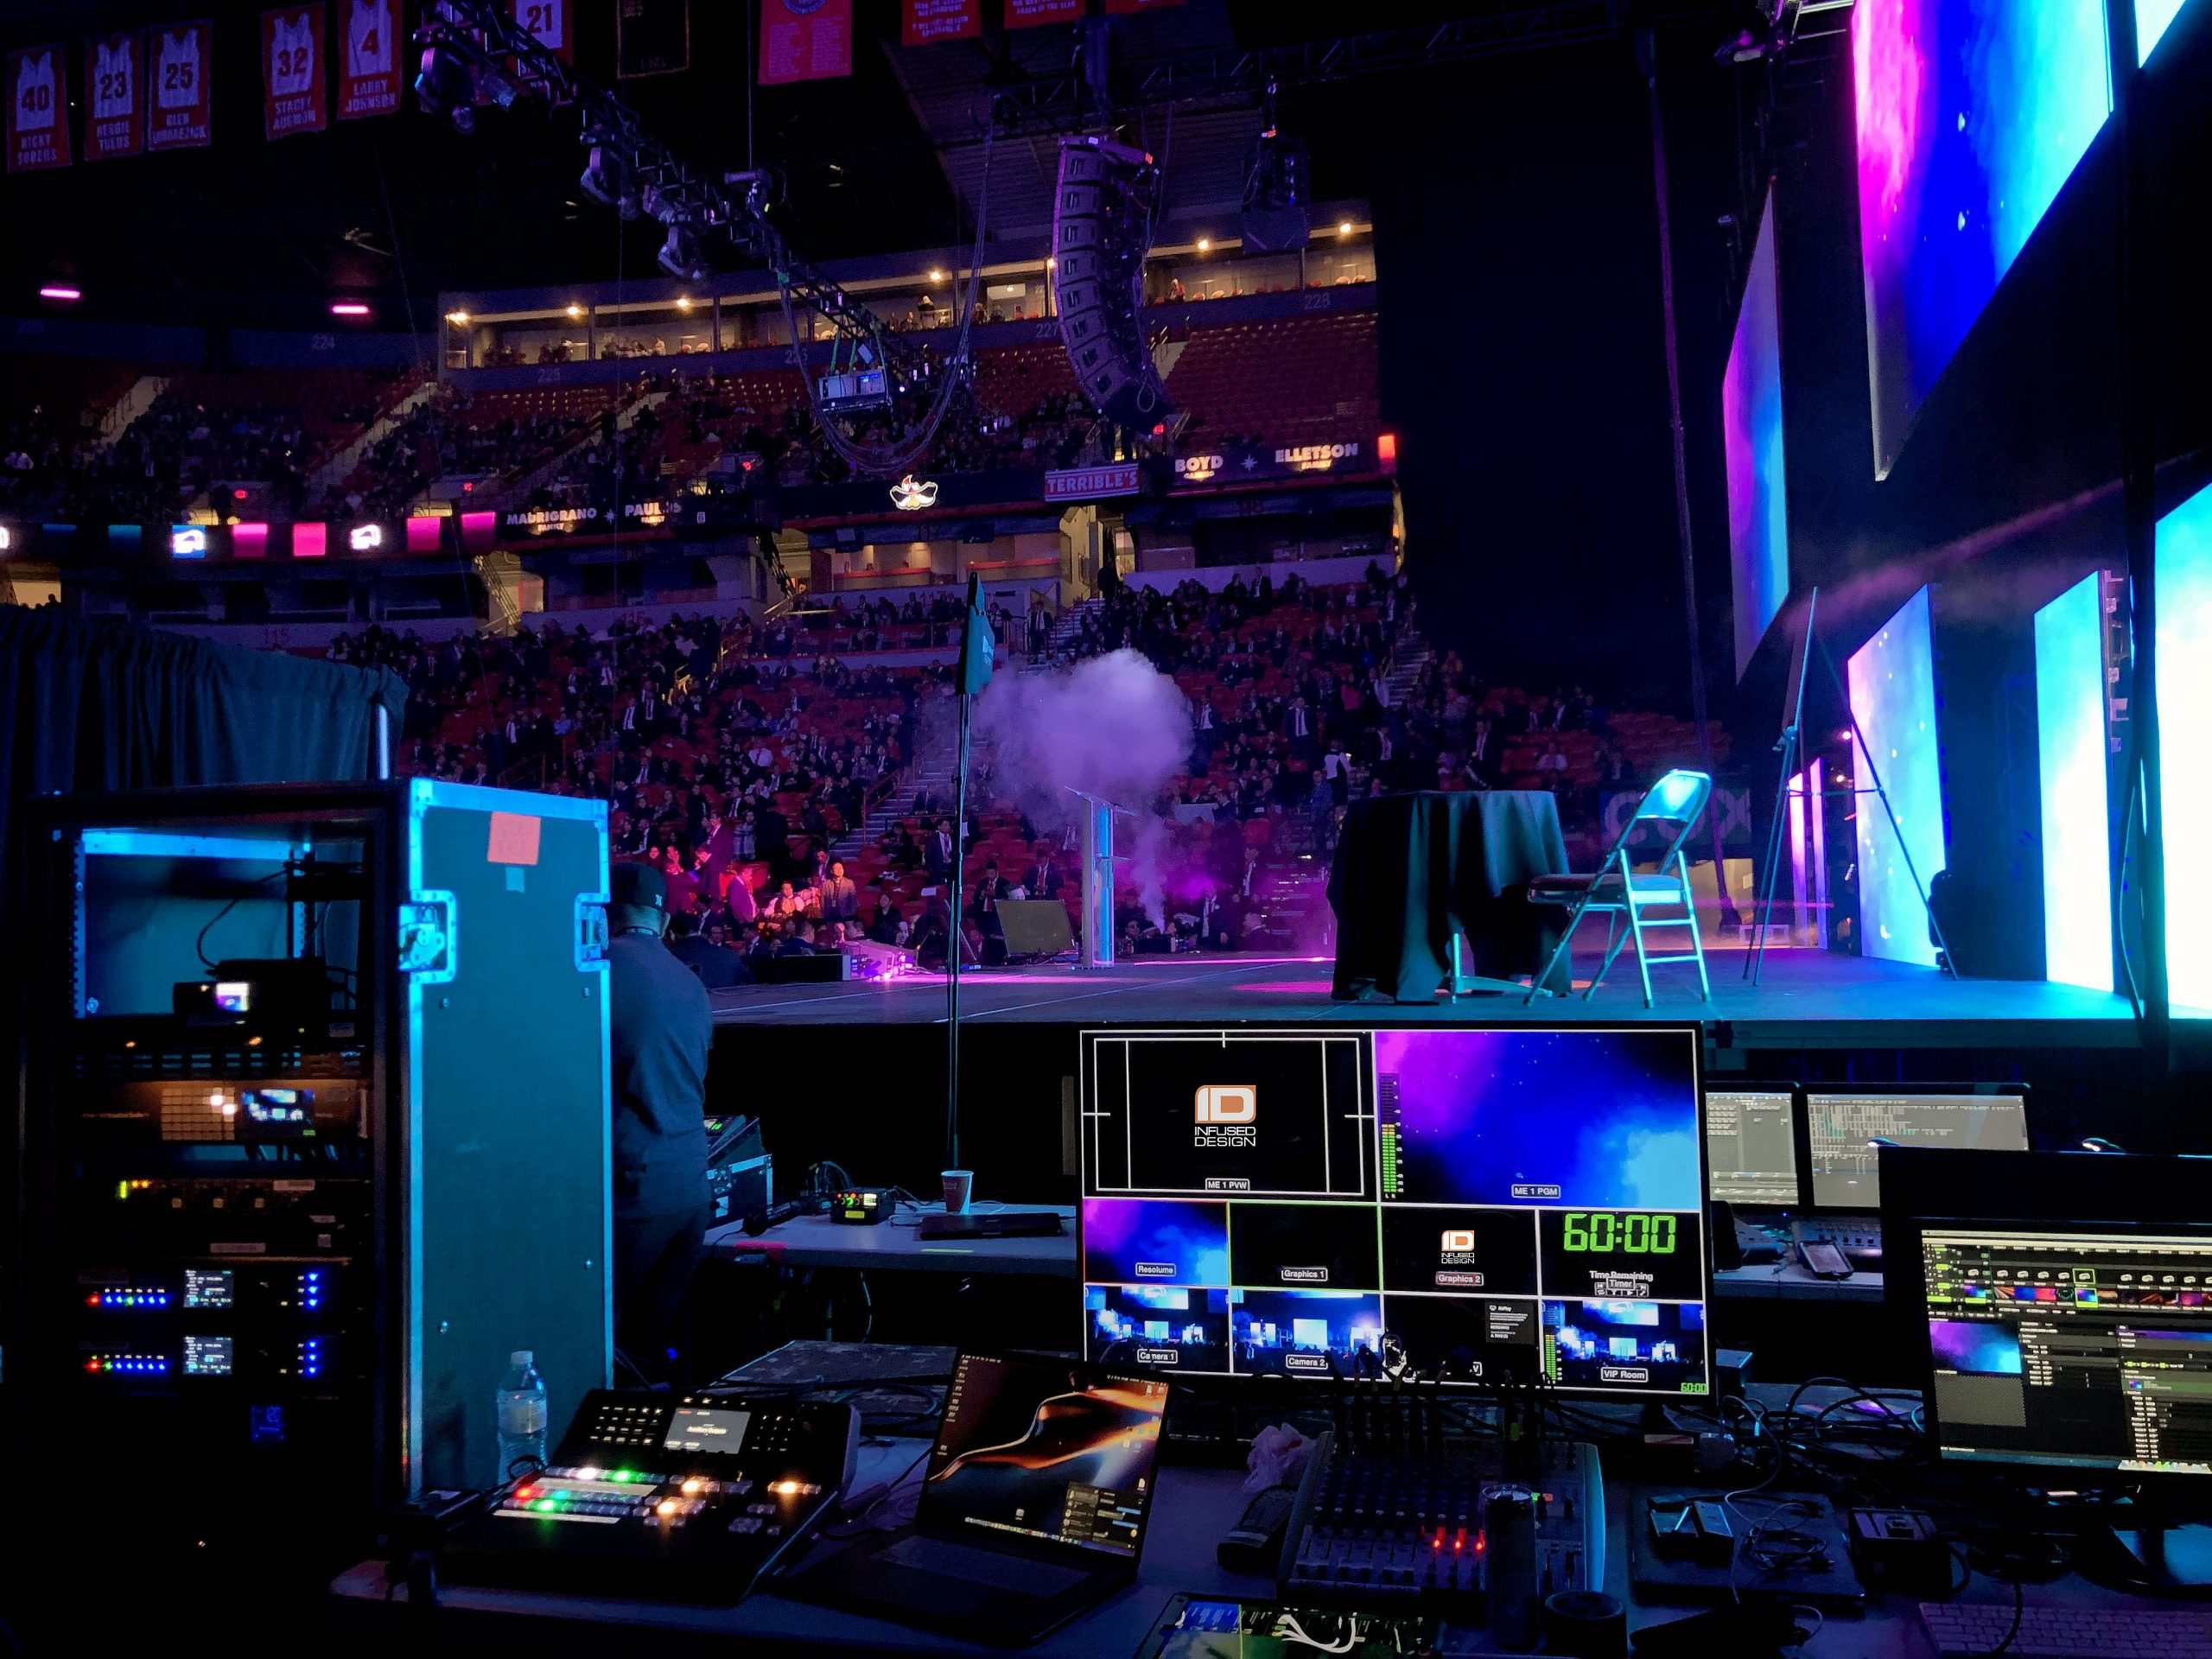 Audio, Video, Lighting, LED Walls, Staging, we got you covered.